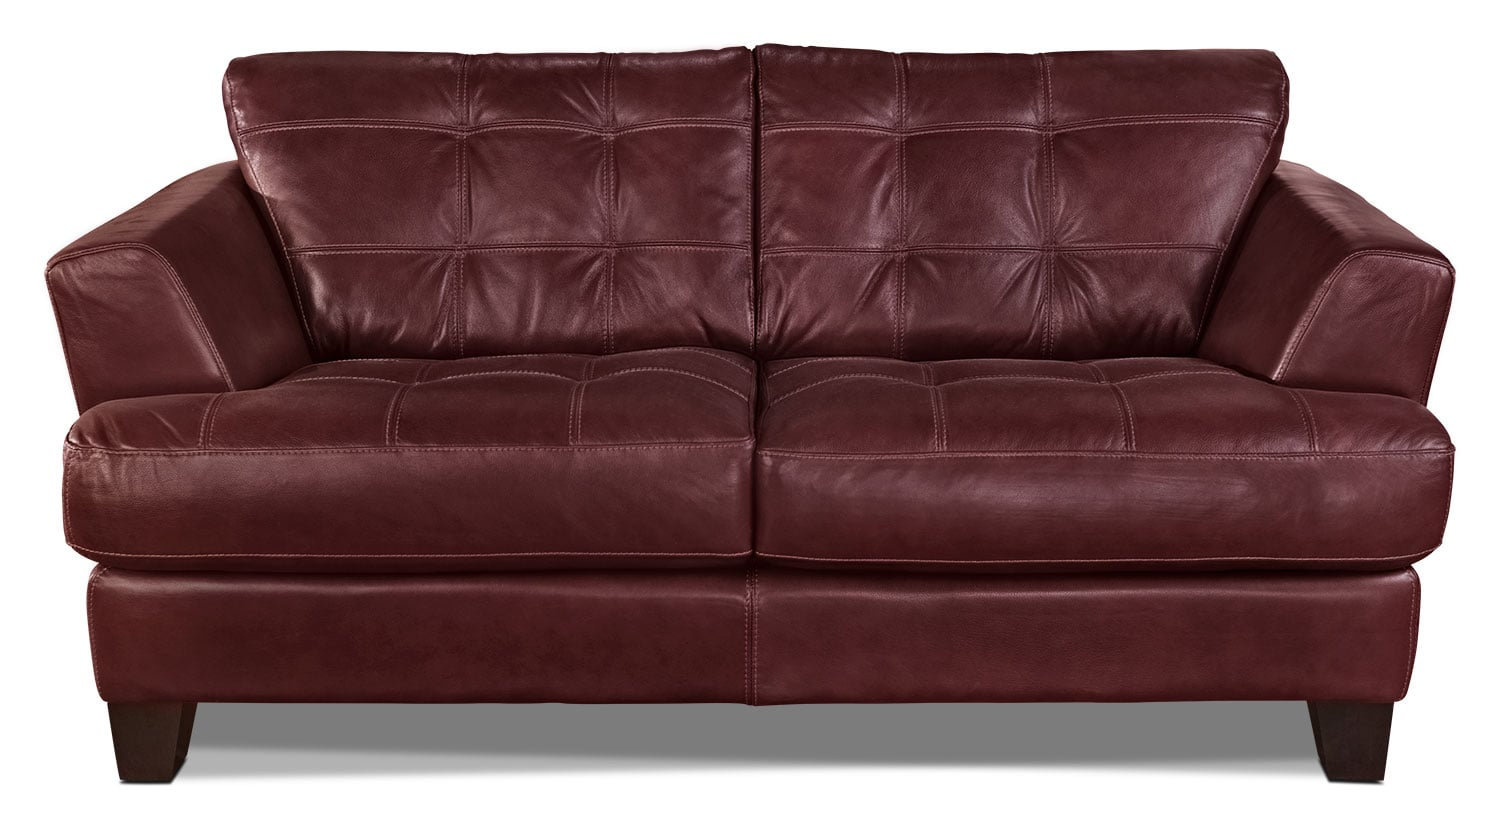 Living Room Furniture - Avenue Genuine Leather Loveseat - Red